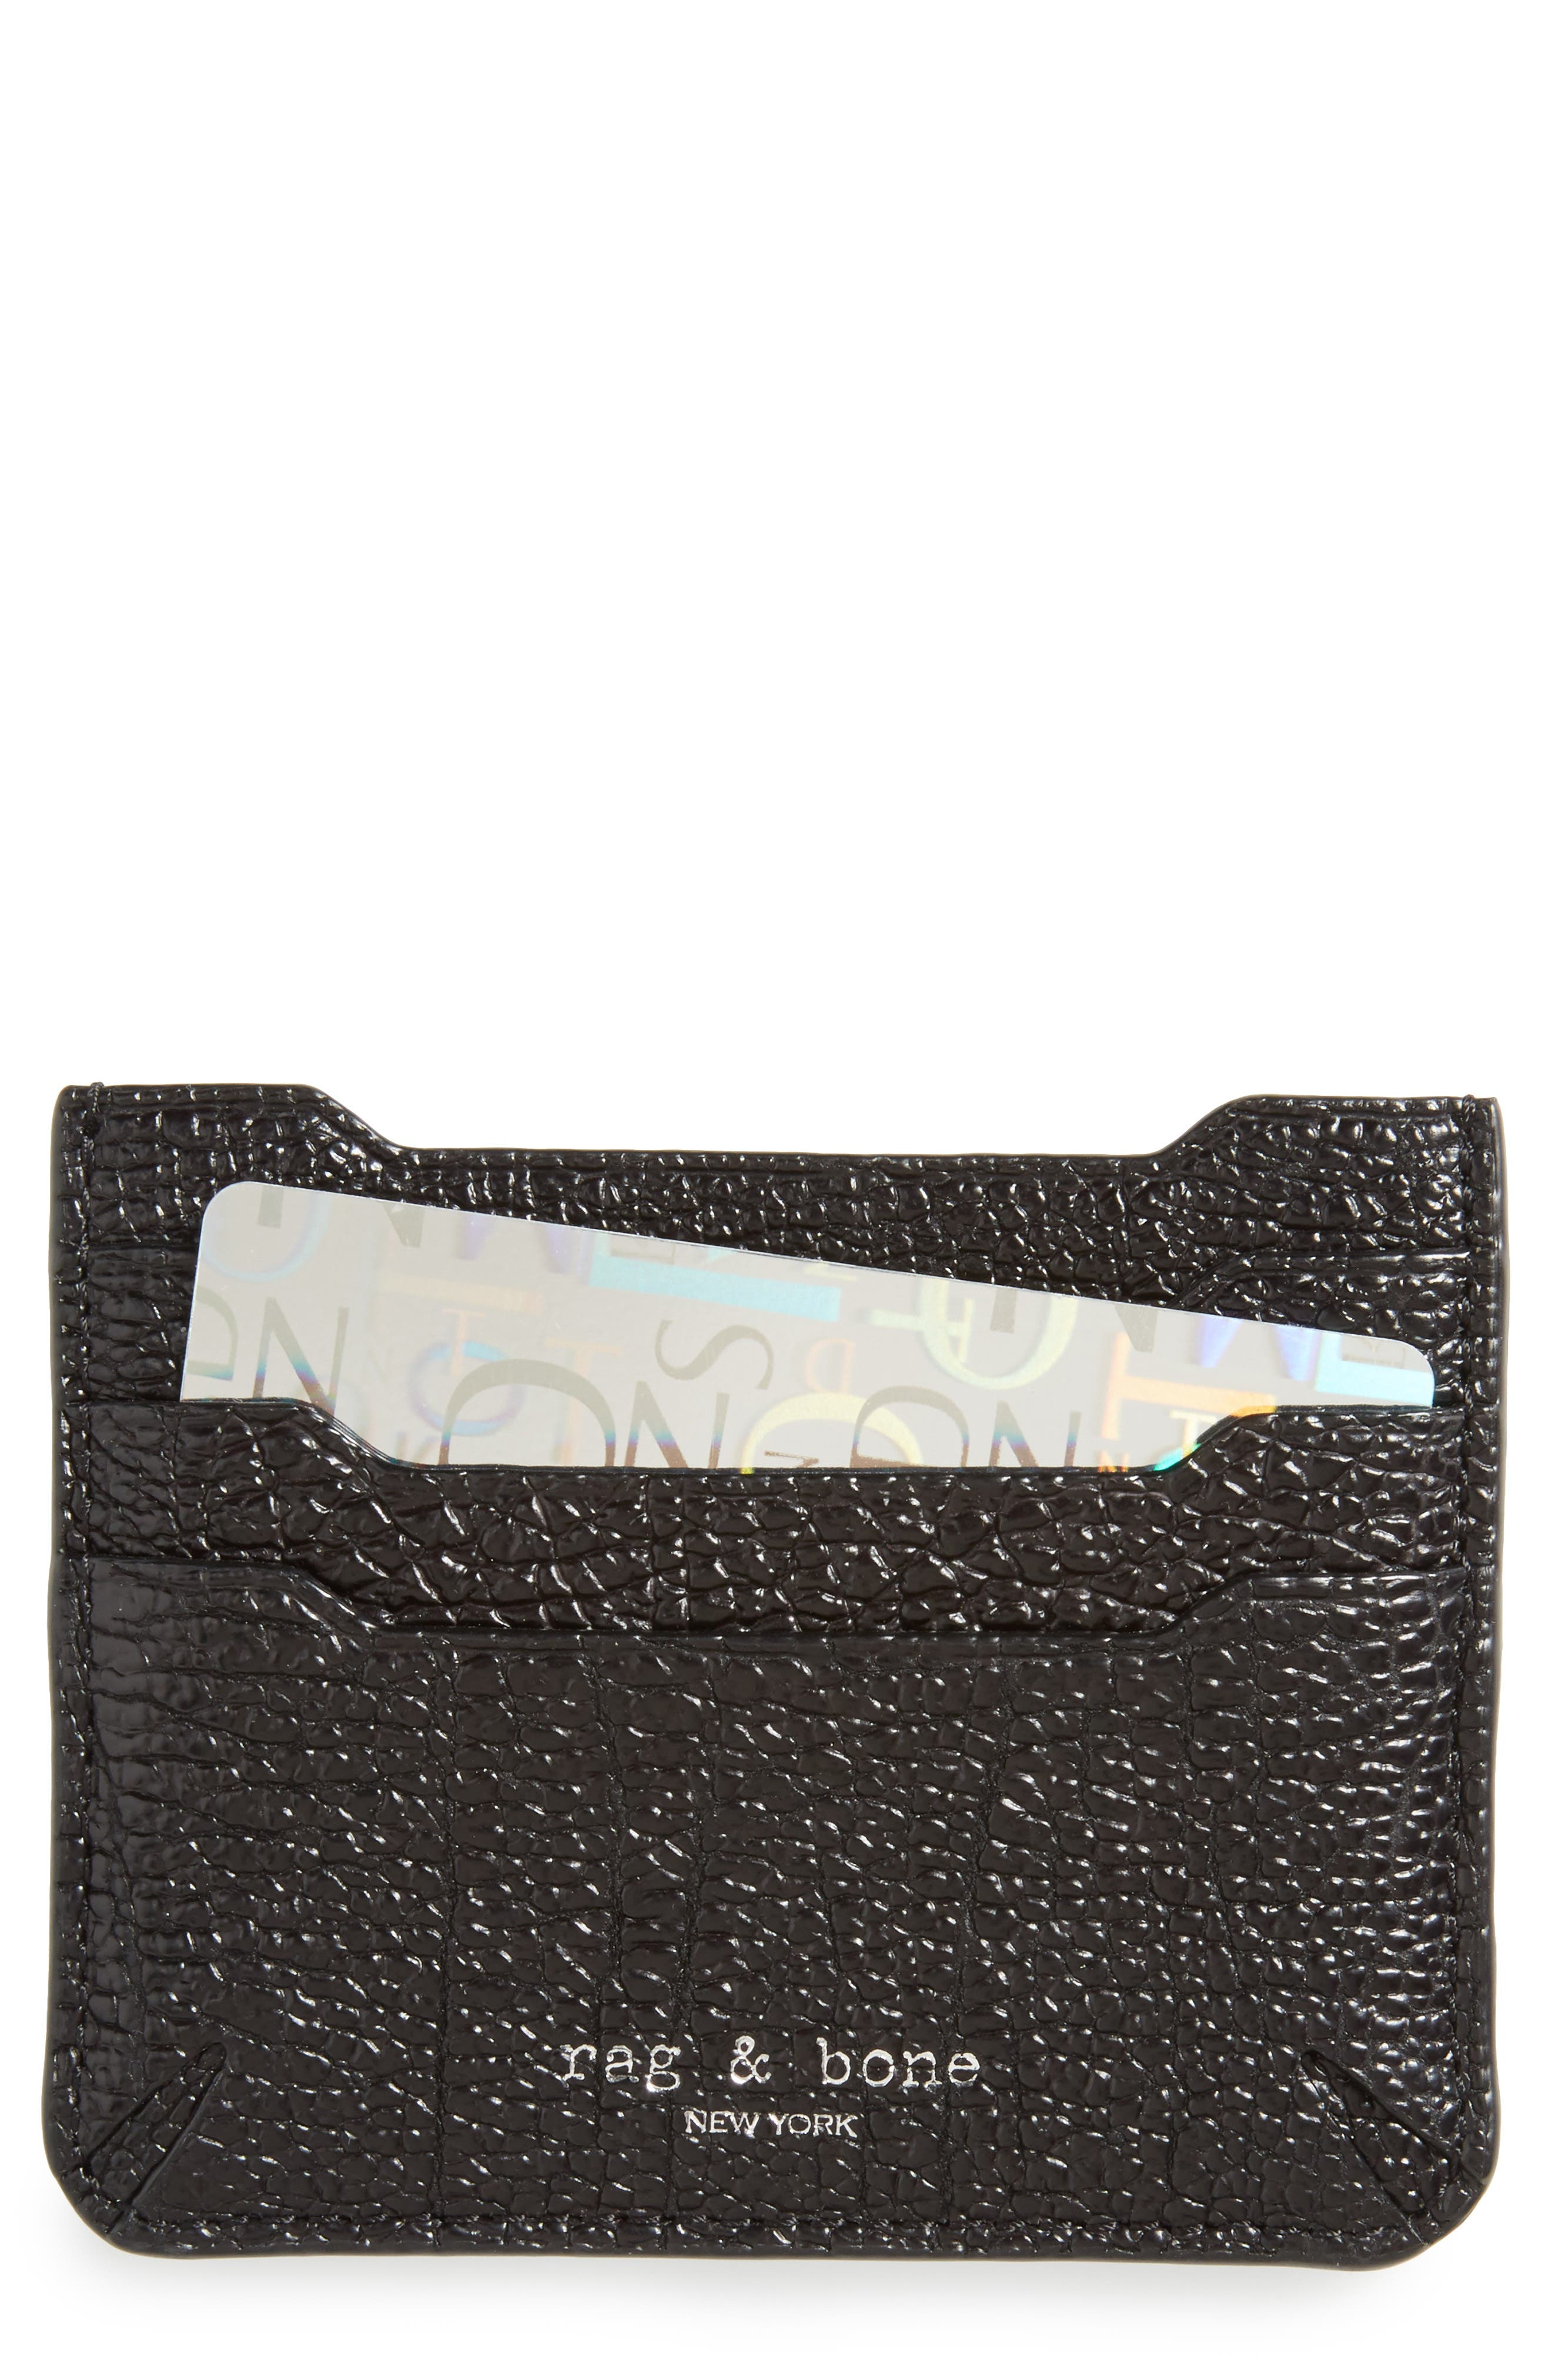 'Crosby' Crackle Leather Card Case,                             Main thumbnail 1, color,                             001